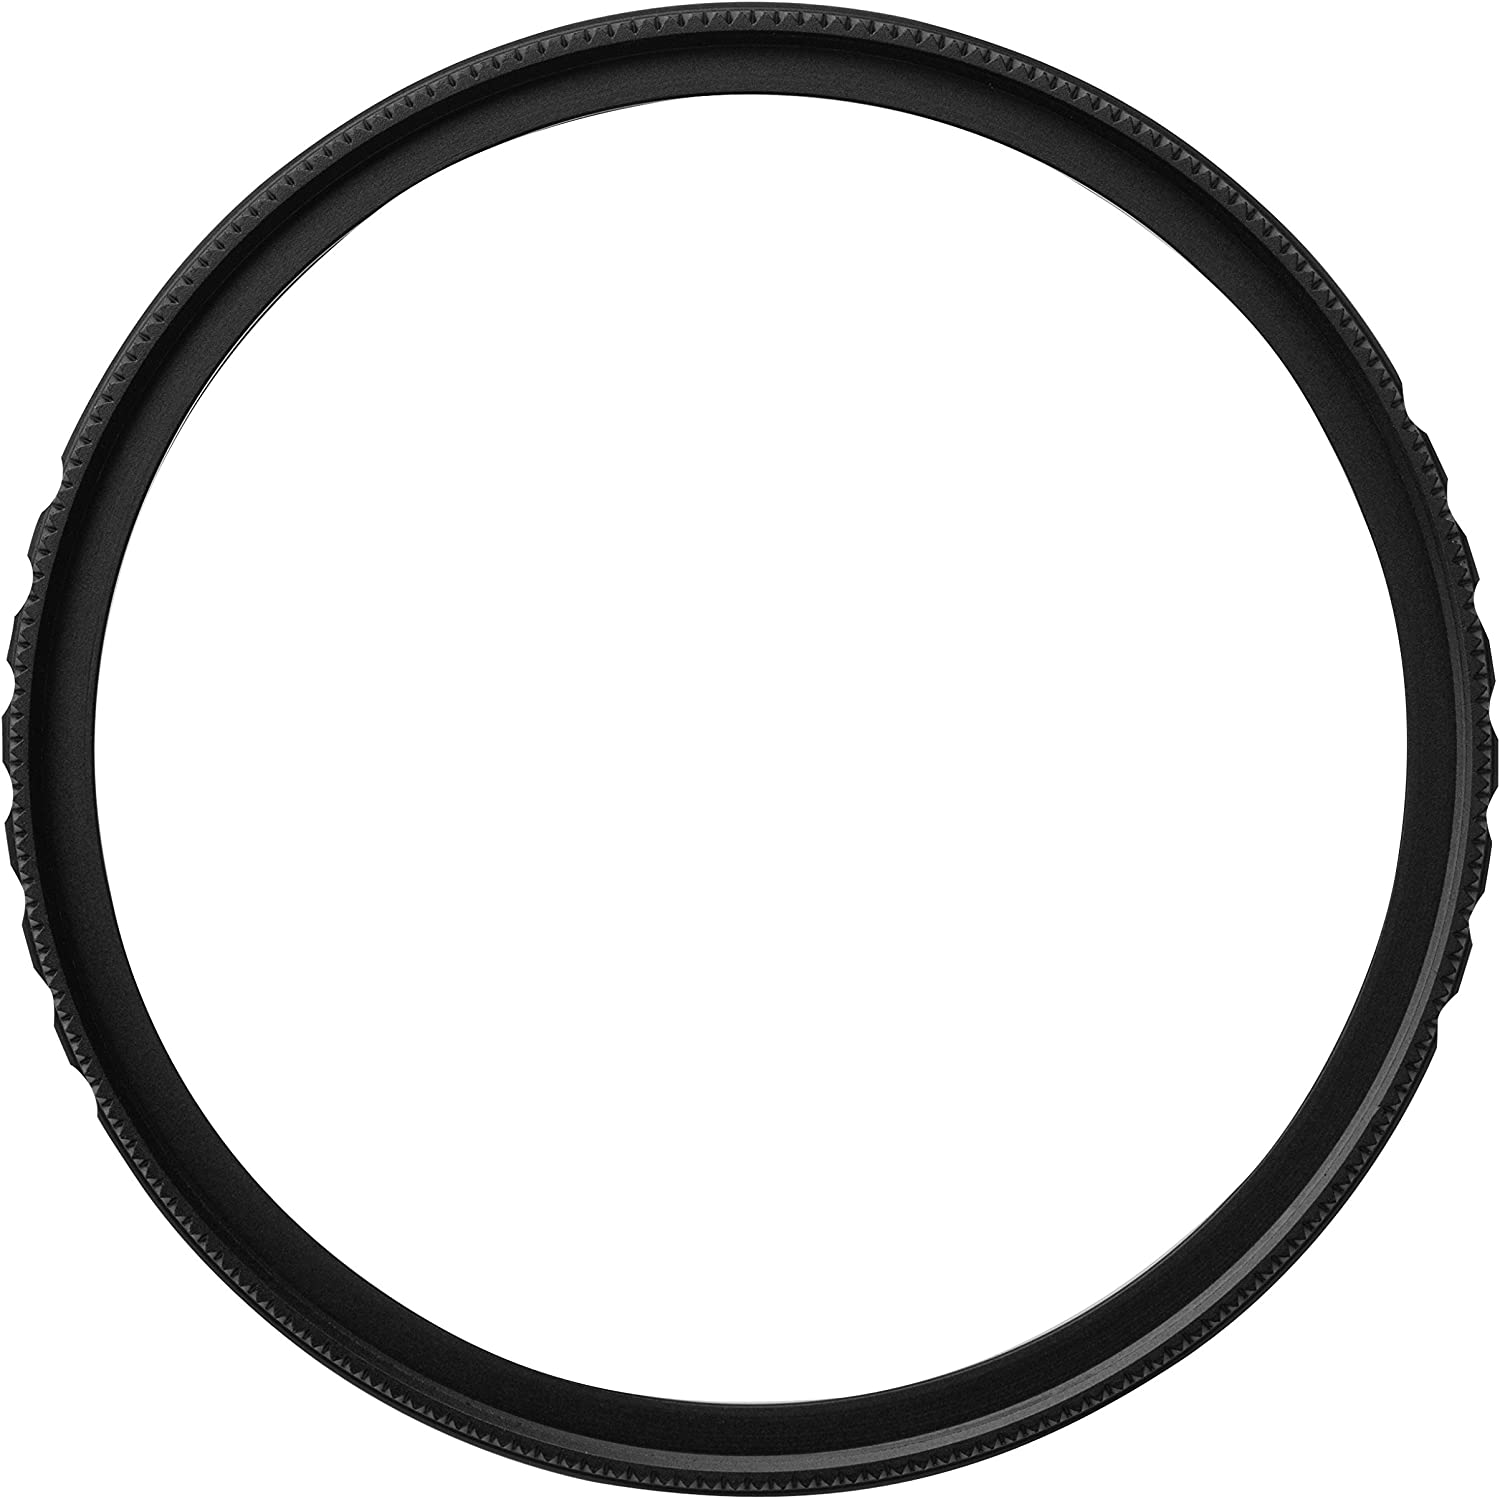 VAUV39 Vu Ariel 39mm UV Filter